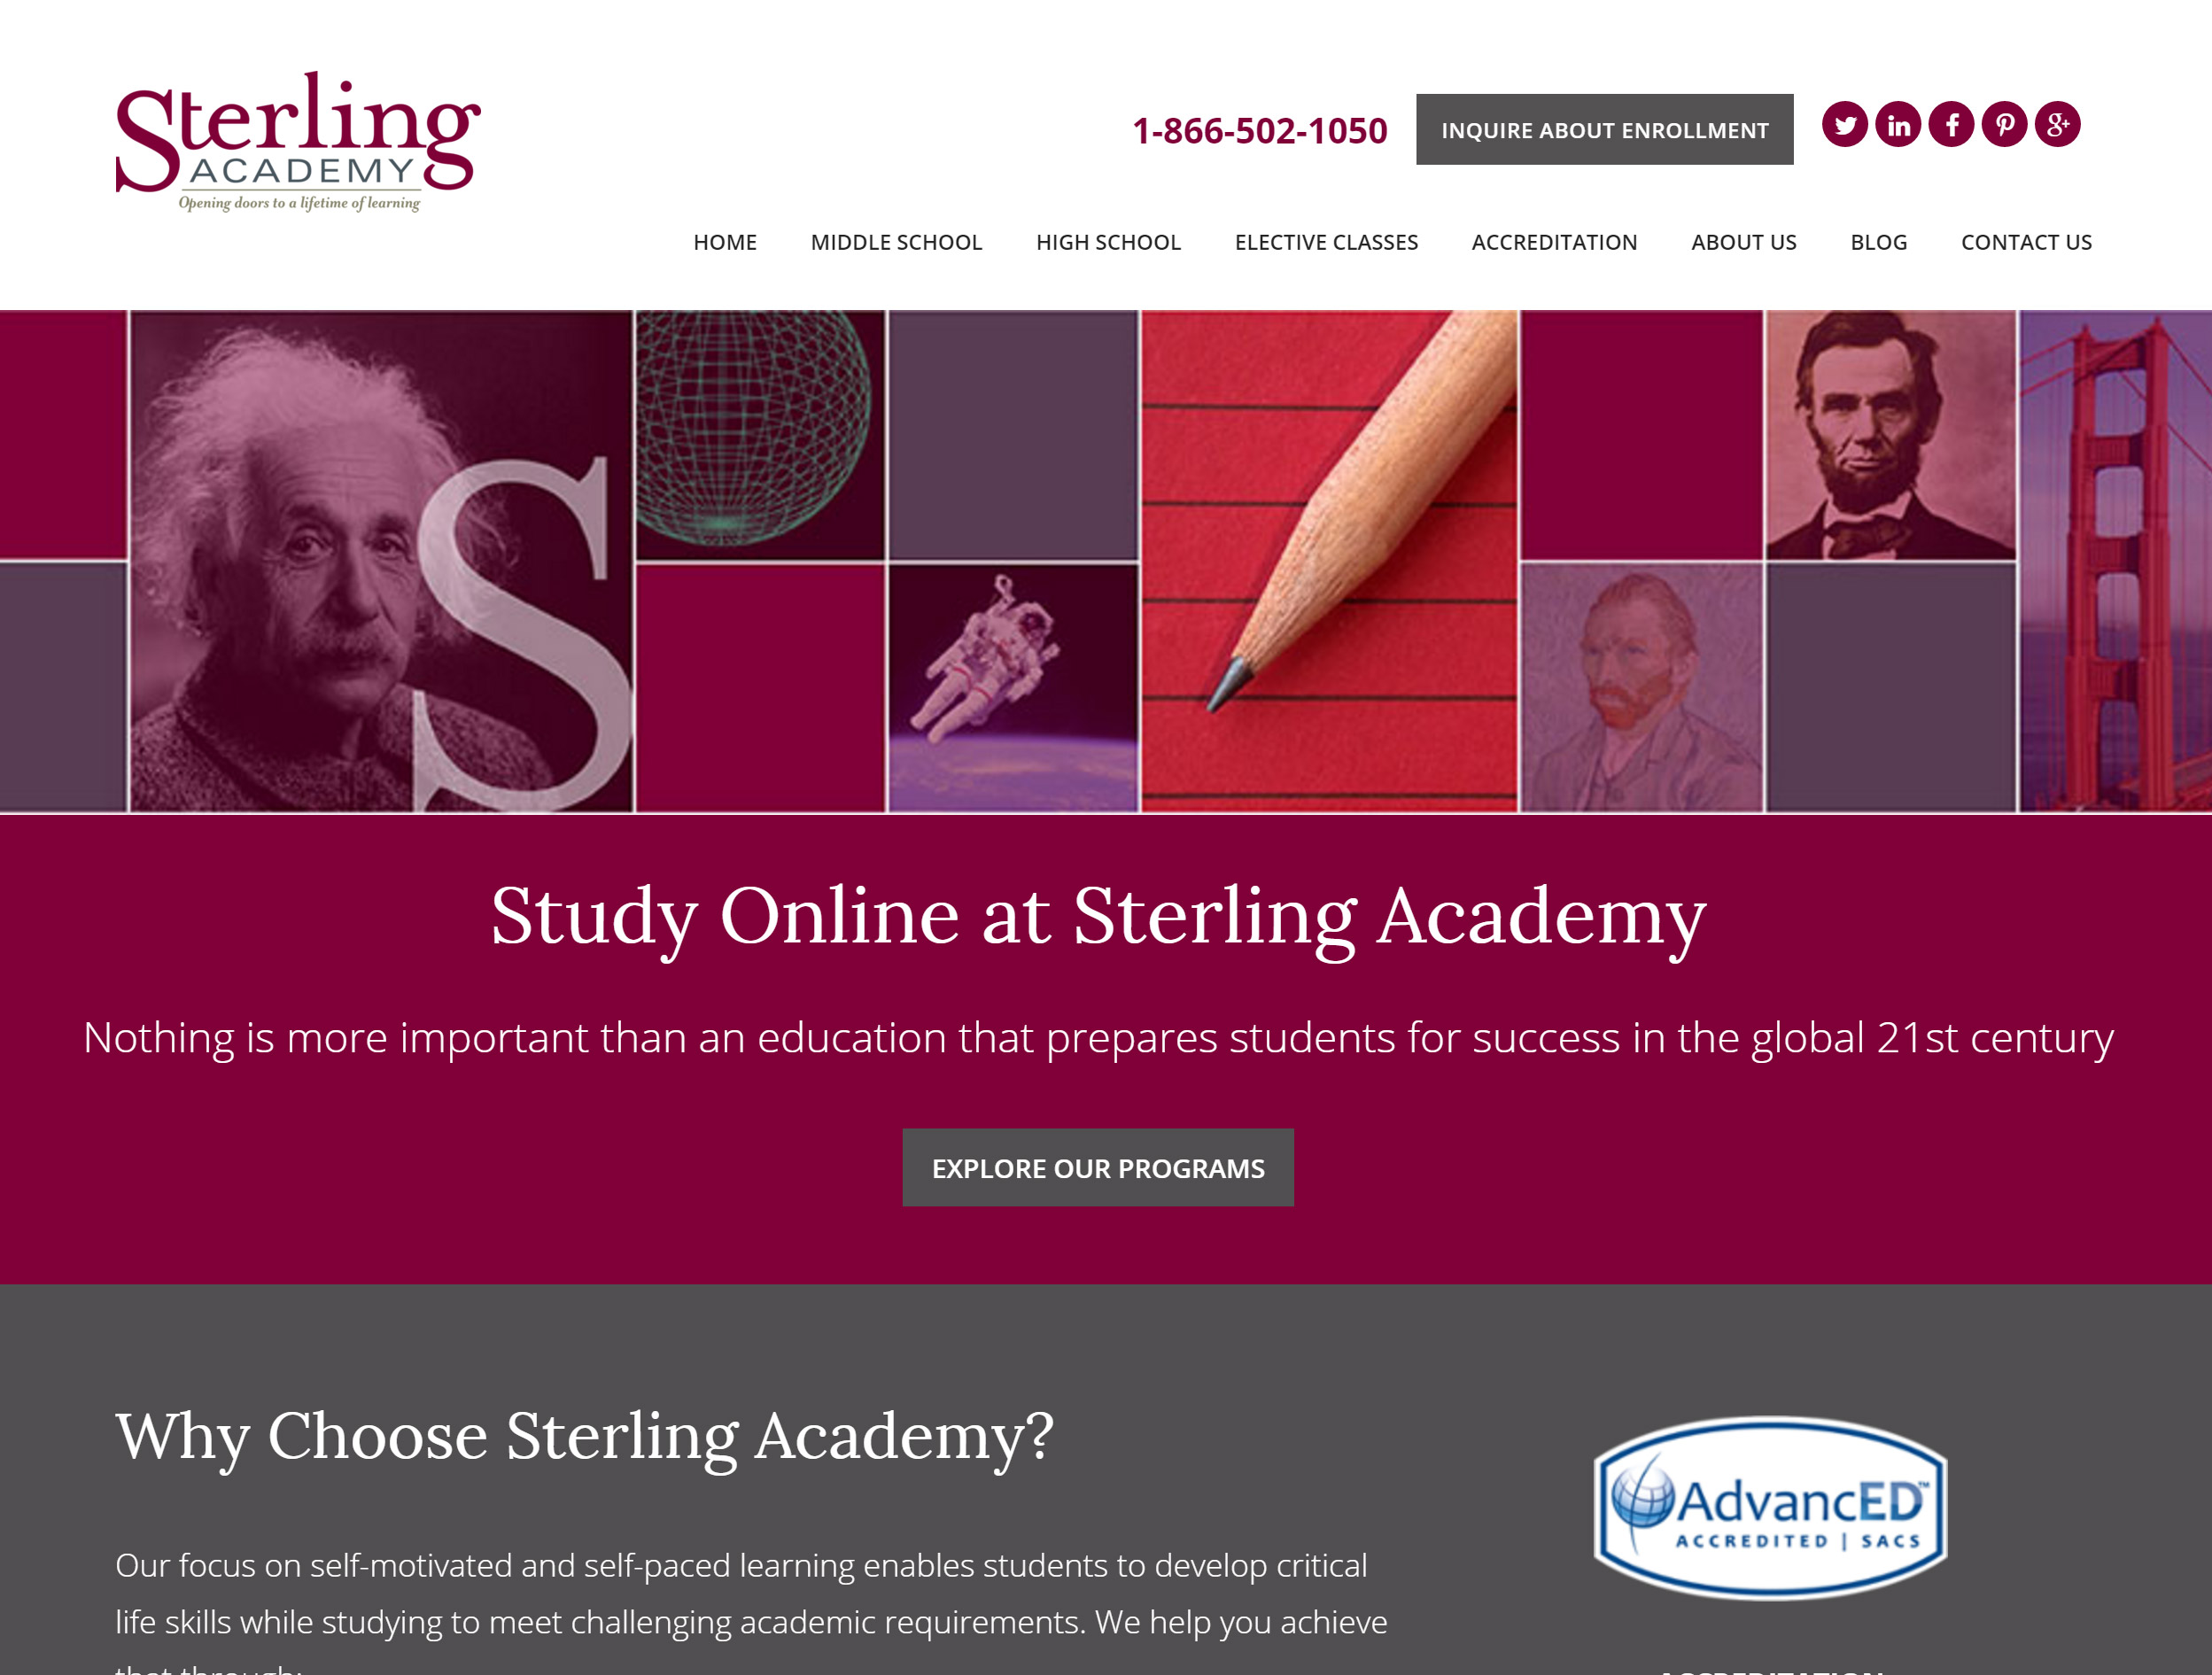 Sterling Academy website